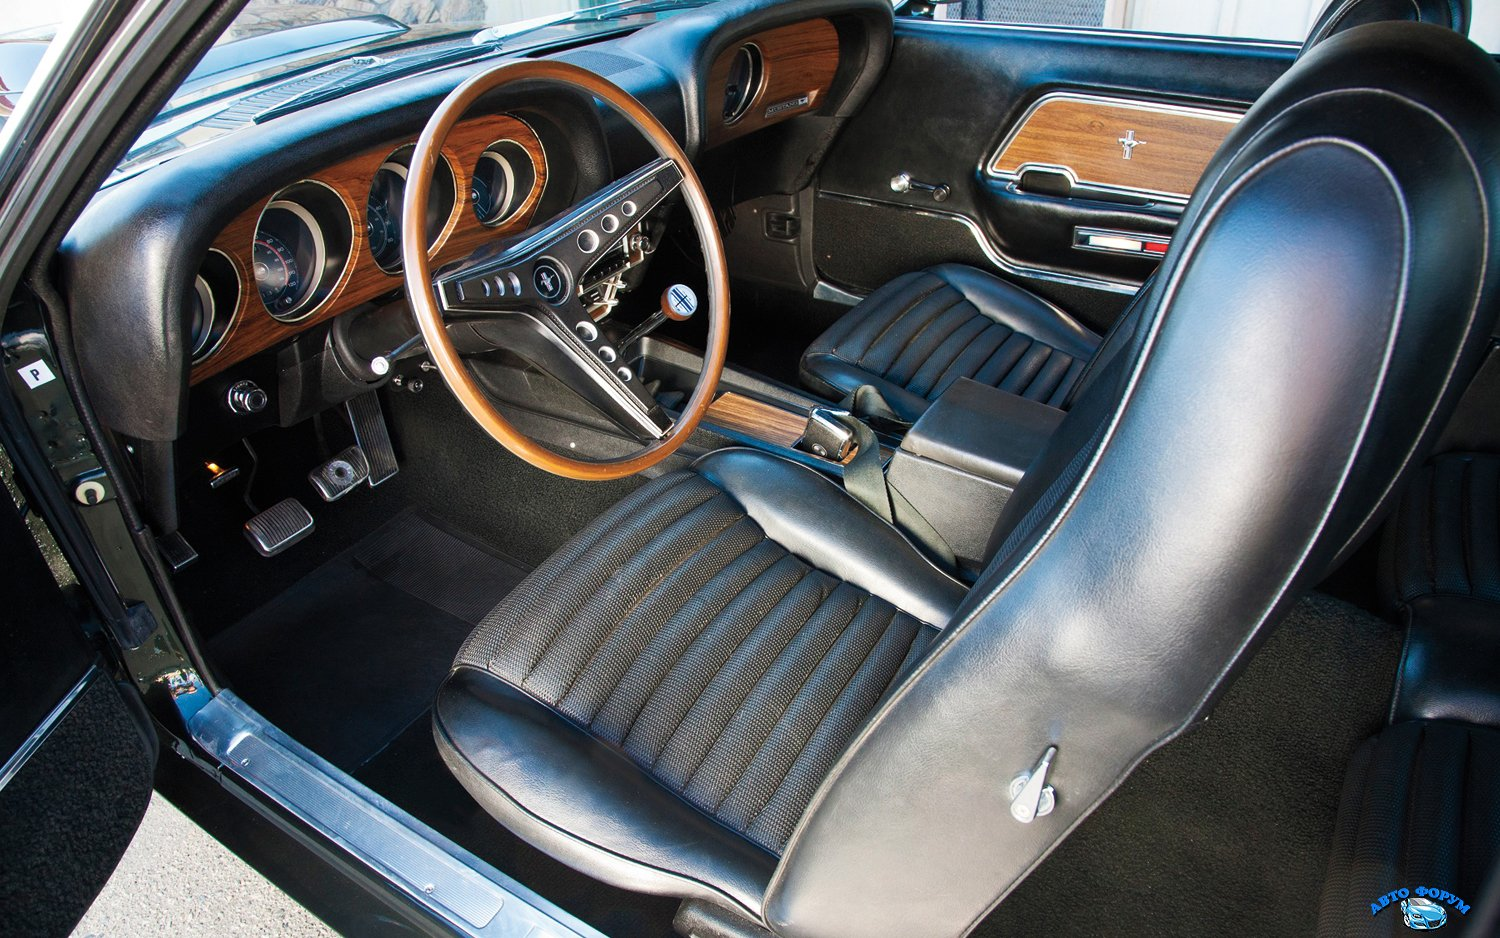 1969-ford-mustang-boss-429-interior.jpg